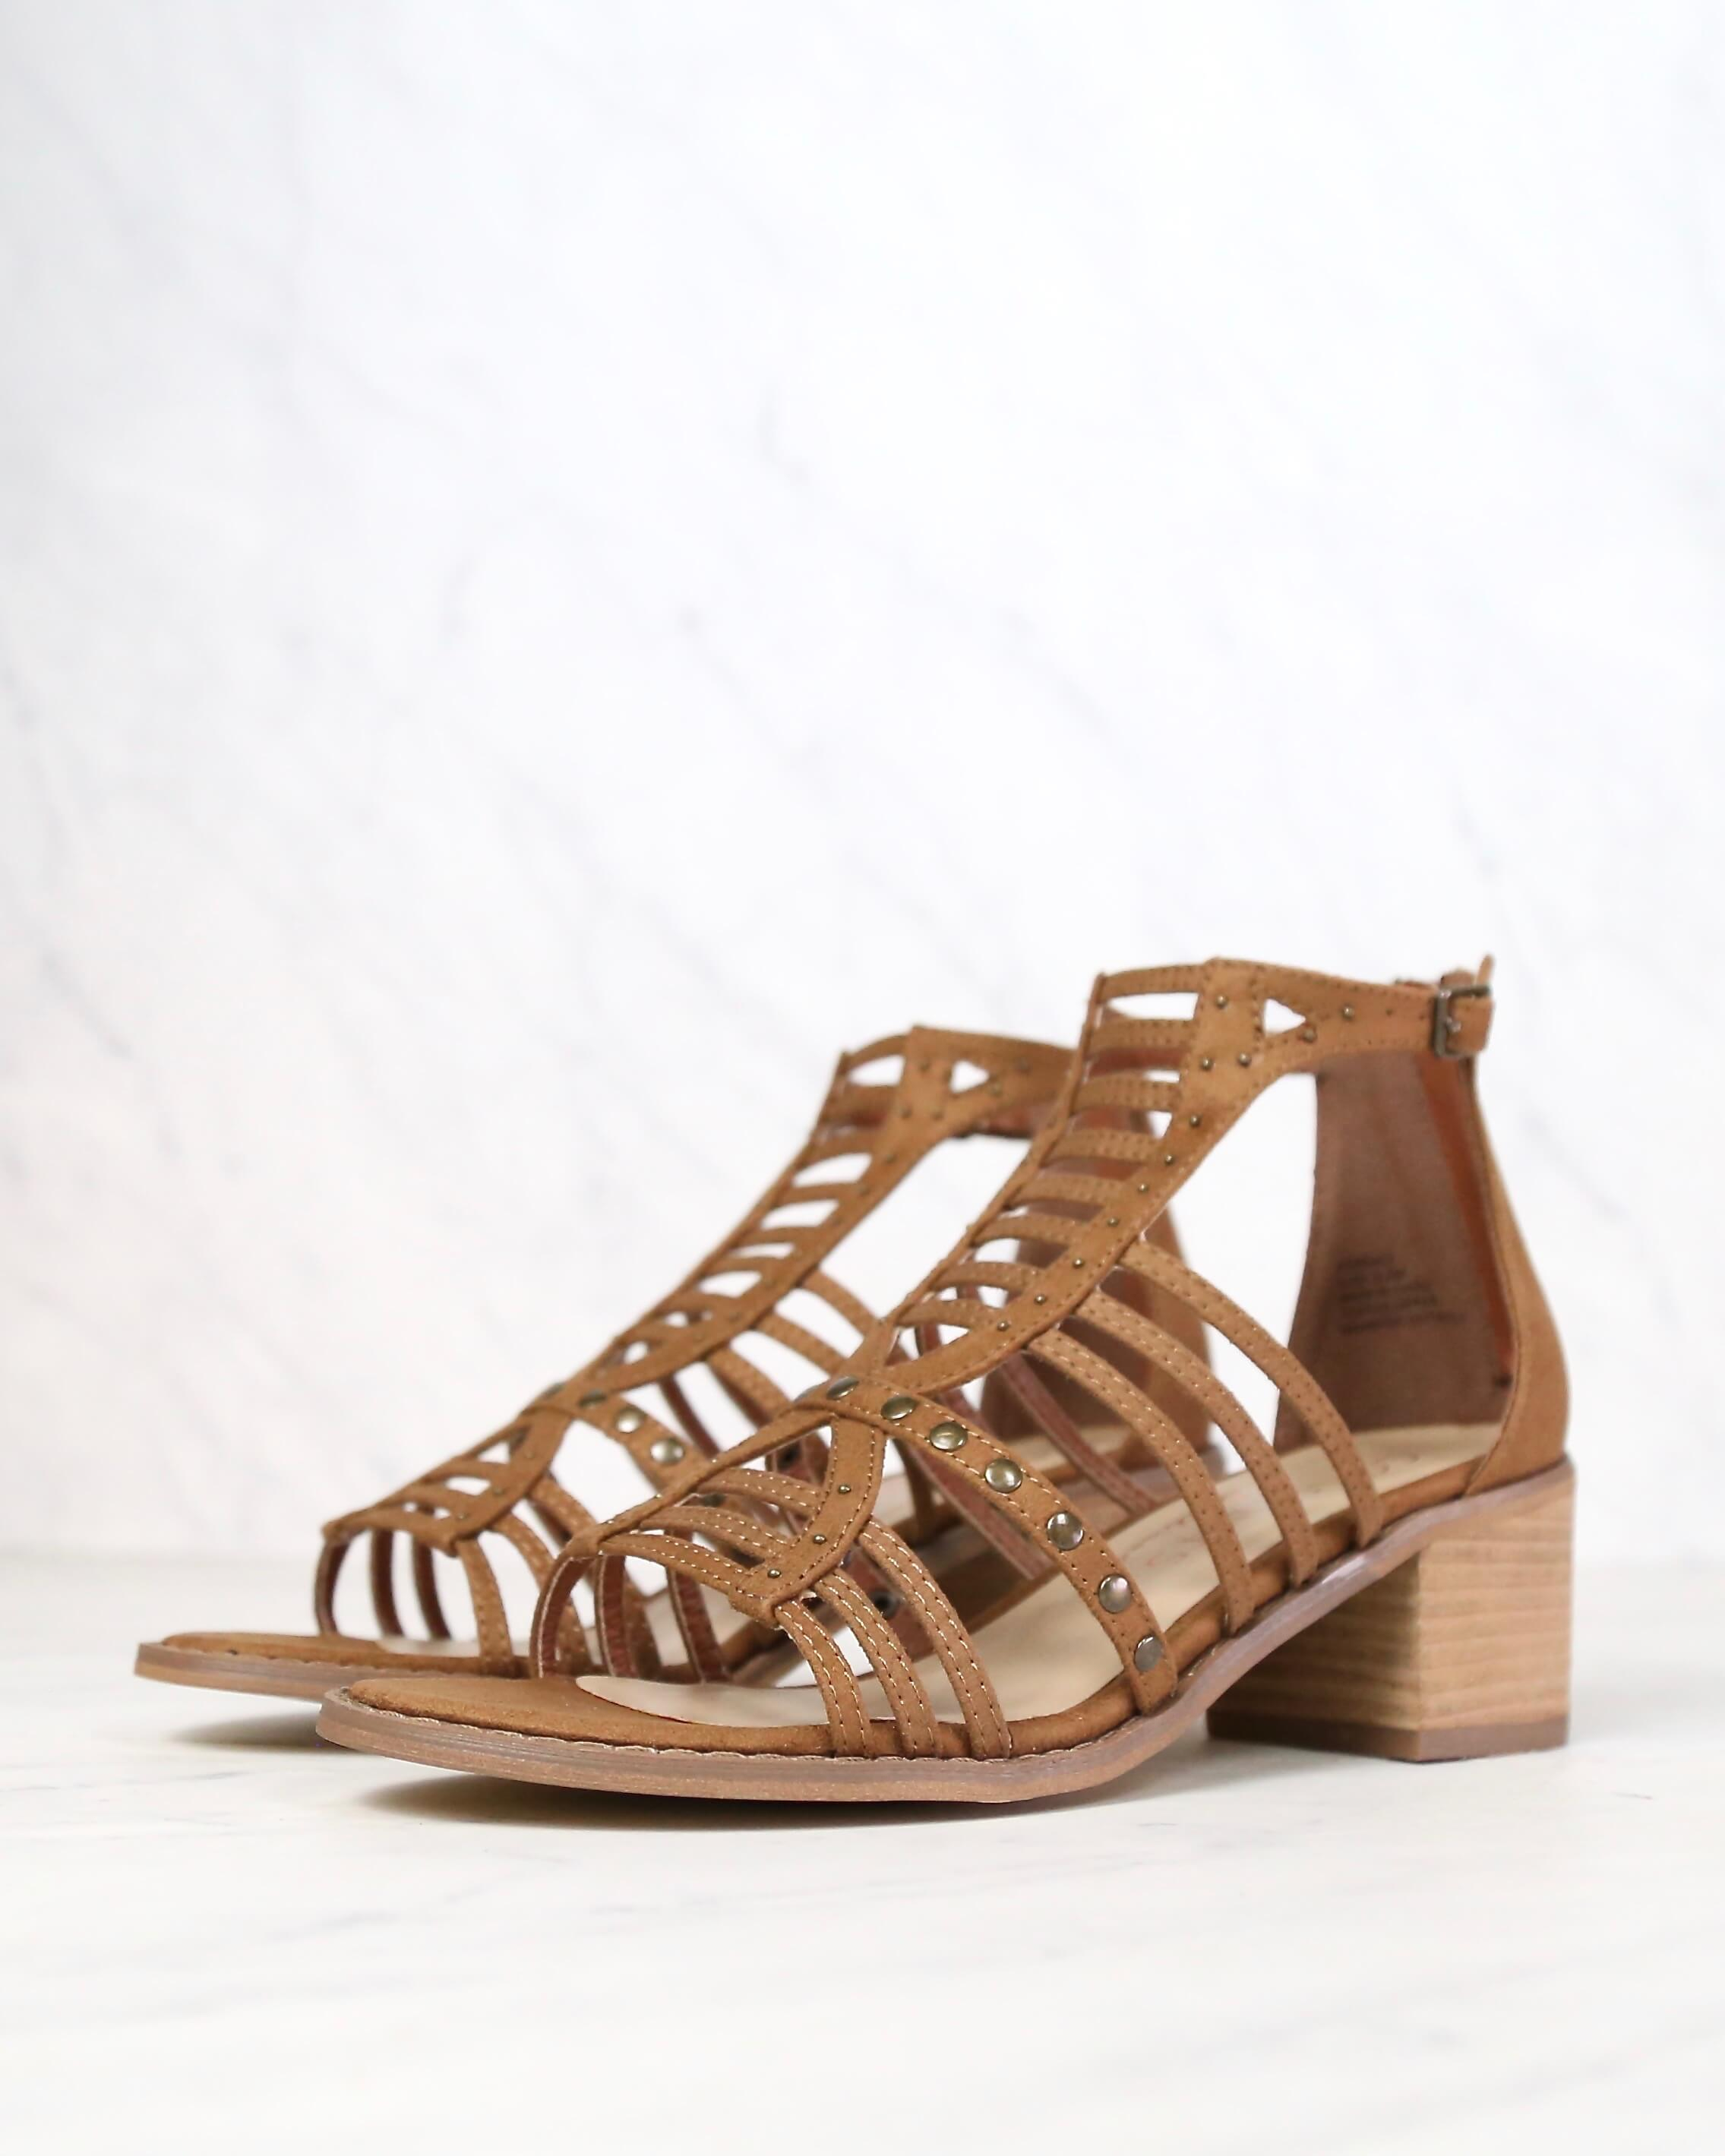 Image of COCONUTS By Matisse - Essence Heeled Sandal in Saddle